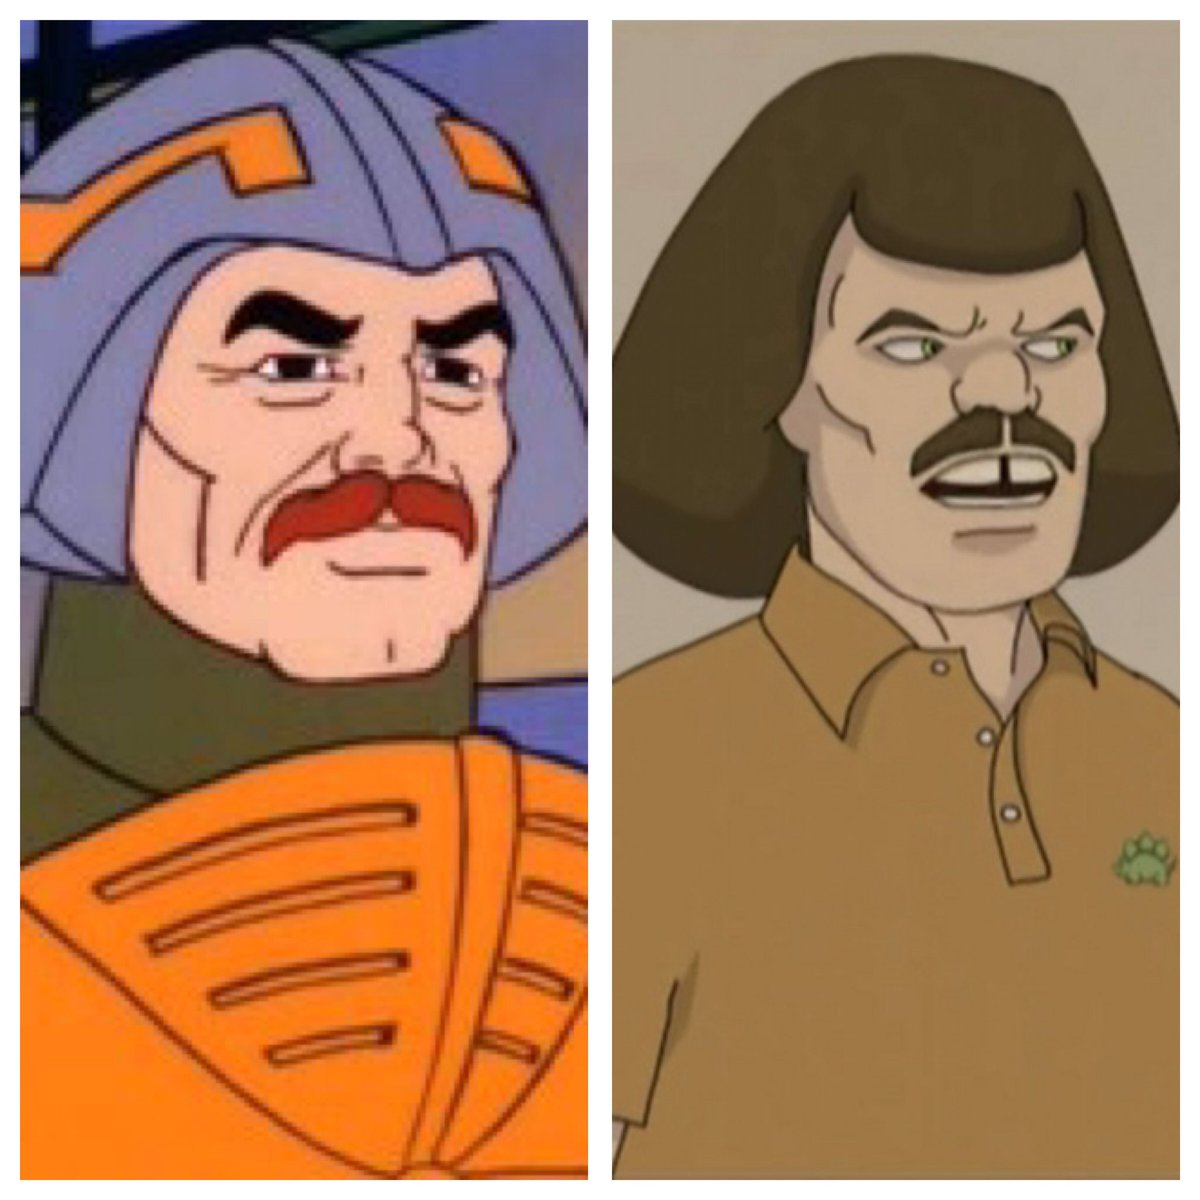 Man-At-Ams quit following He-Man to follow his dreams of becoming Murderface, bassist for Dethklok. #InstantFanTheory #He-Man #metalocalypse<br>http://pic.twitter.com/JvnfJS7nj5